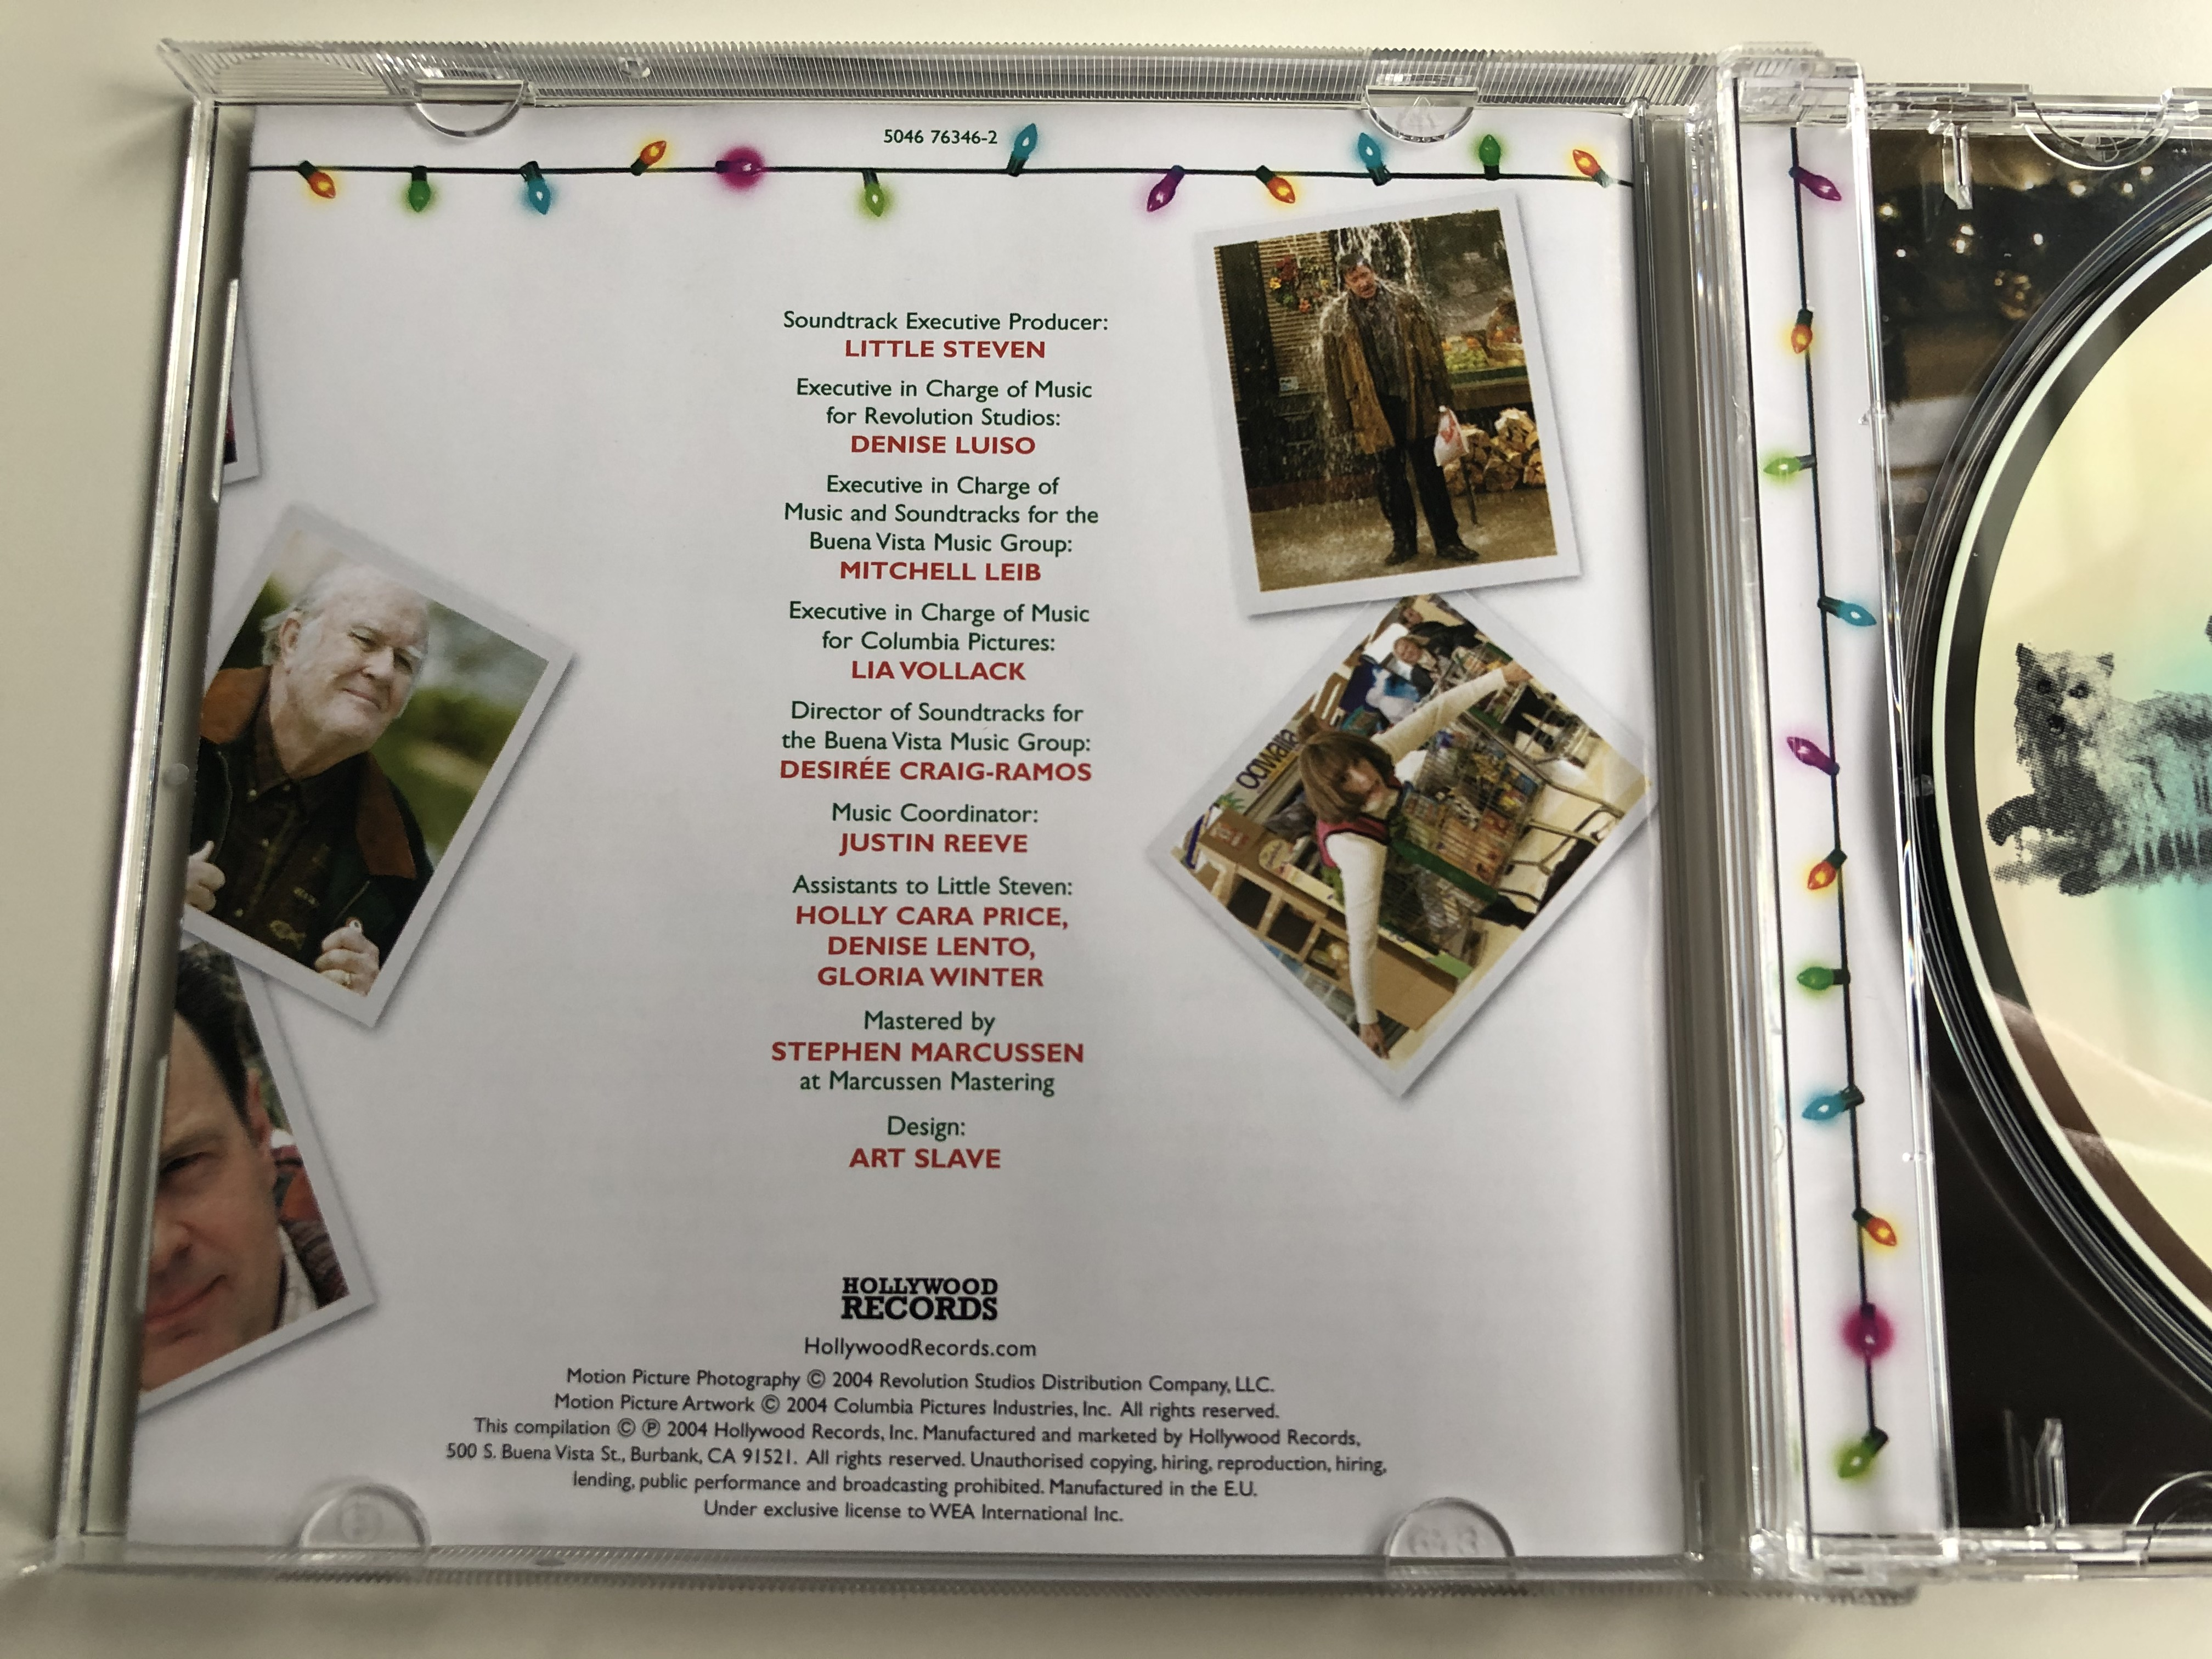 christmas-with-the-kranks-original-soundtrack-hollywood-records-audio-cd-2004-5046-76346-2-5-.jpg